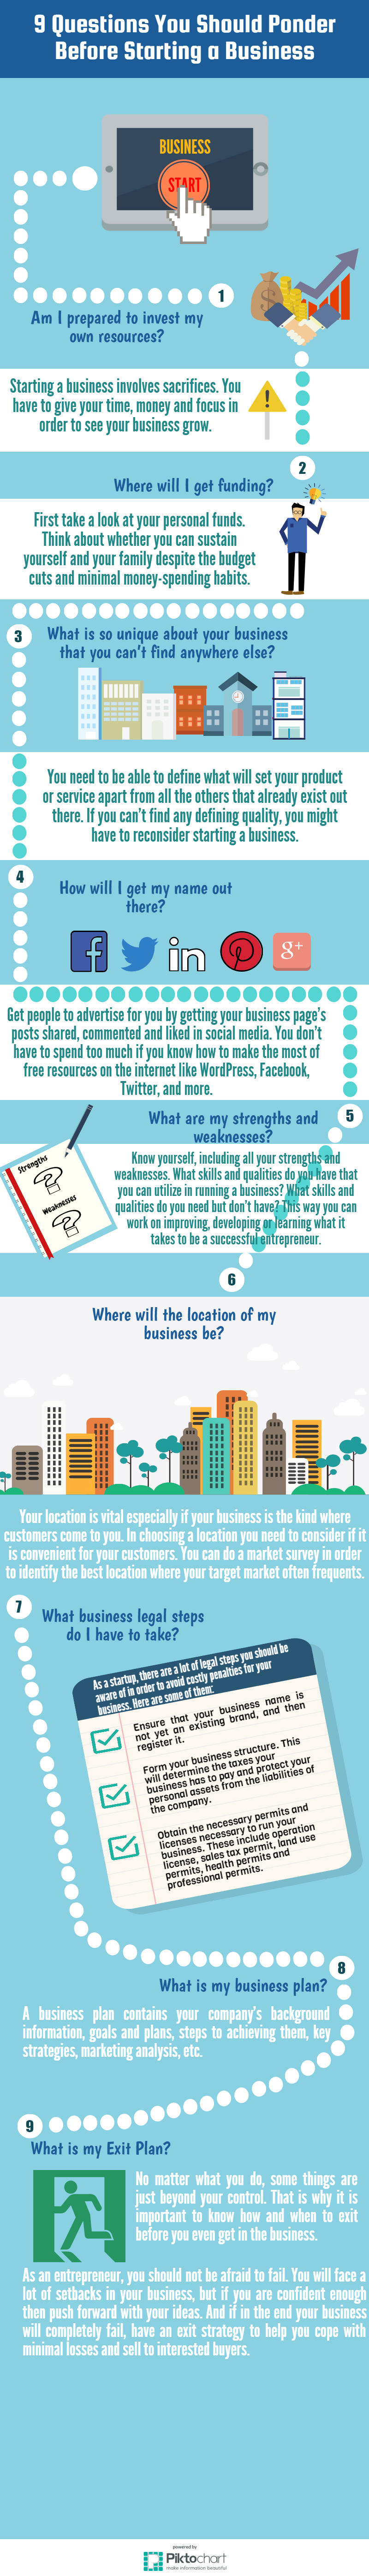 9 Questions You Should Ponder Before Starting a Business infographics